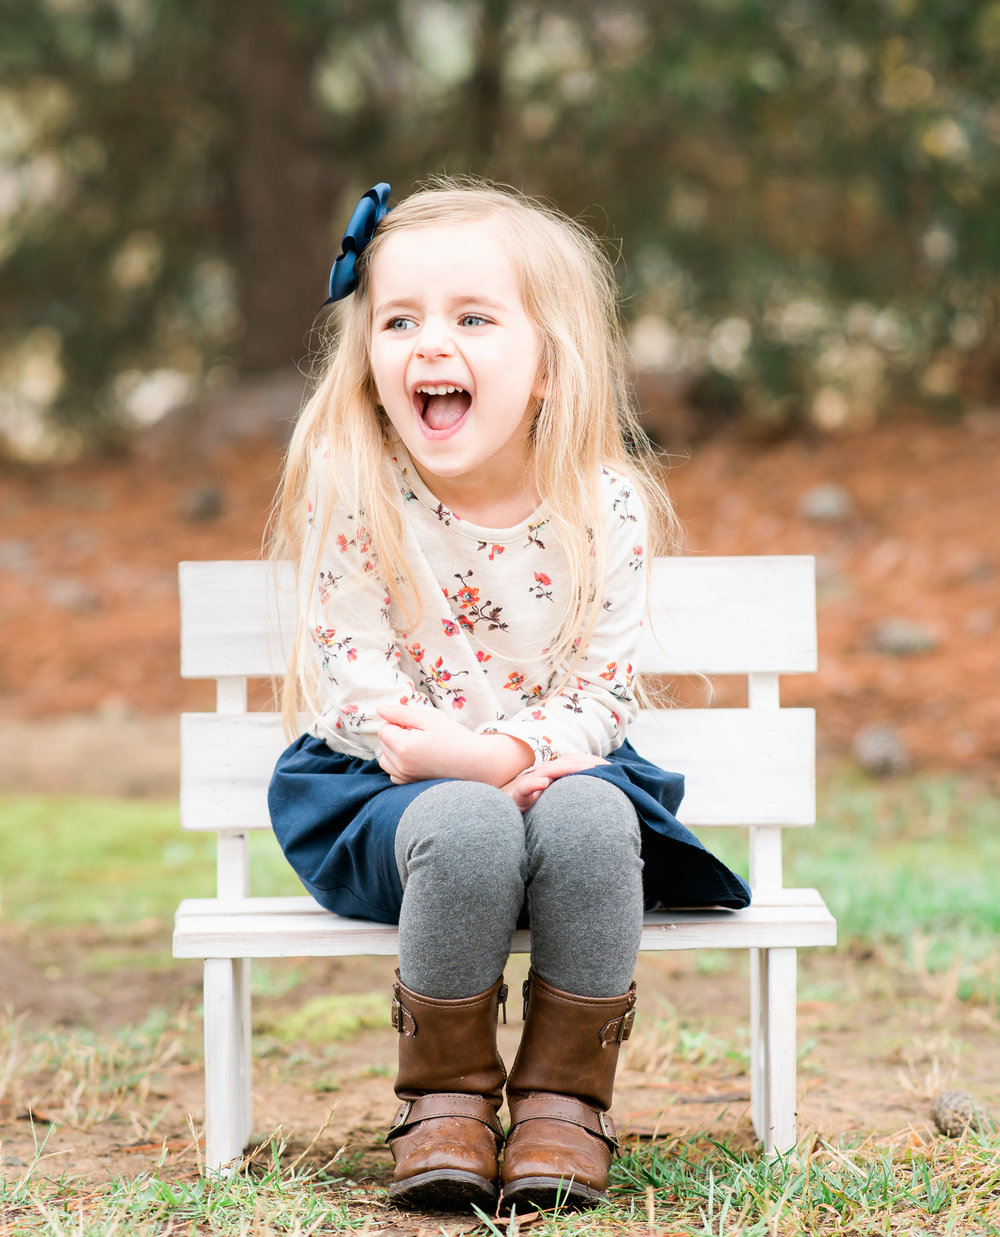 Child Photography in Charlotte, NC